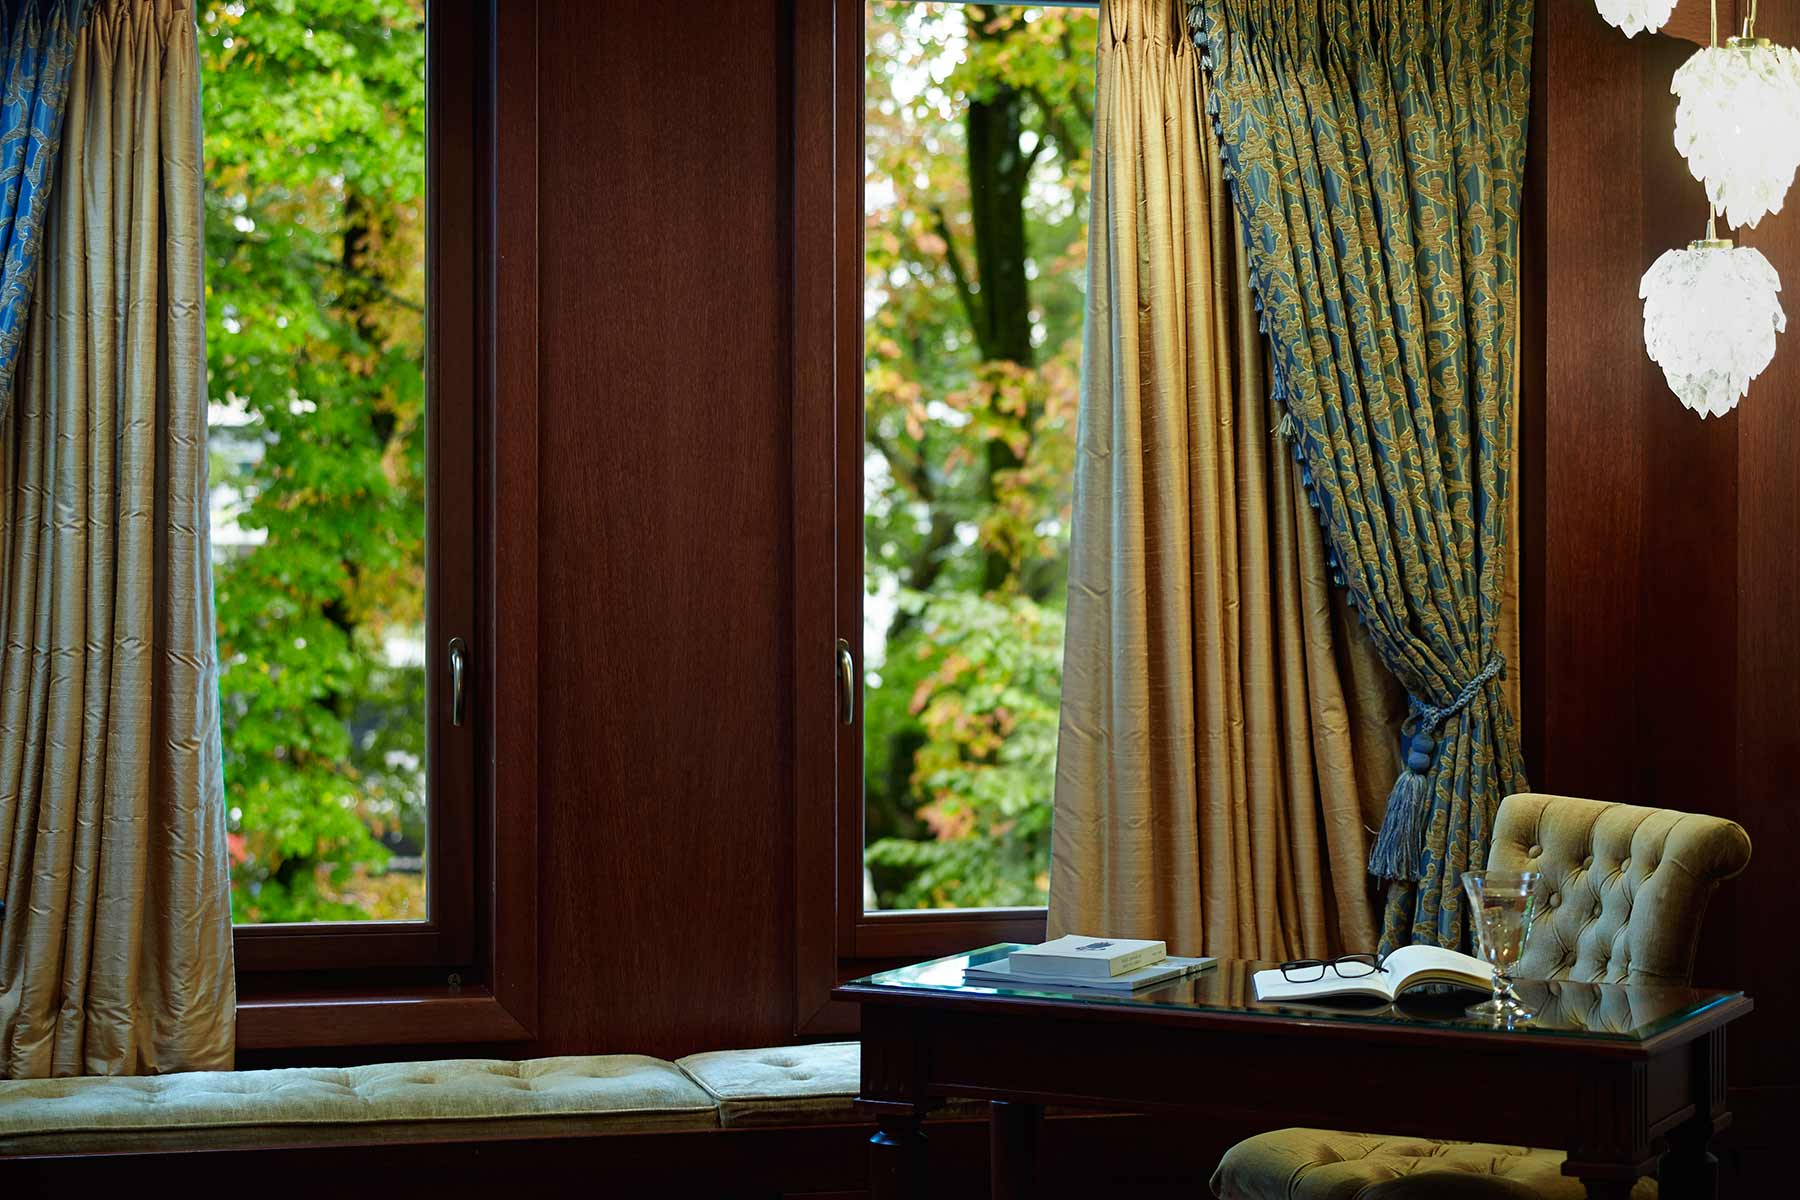 grand-serai-superior-double-room-ioannina-greece-4.jpg